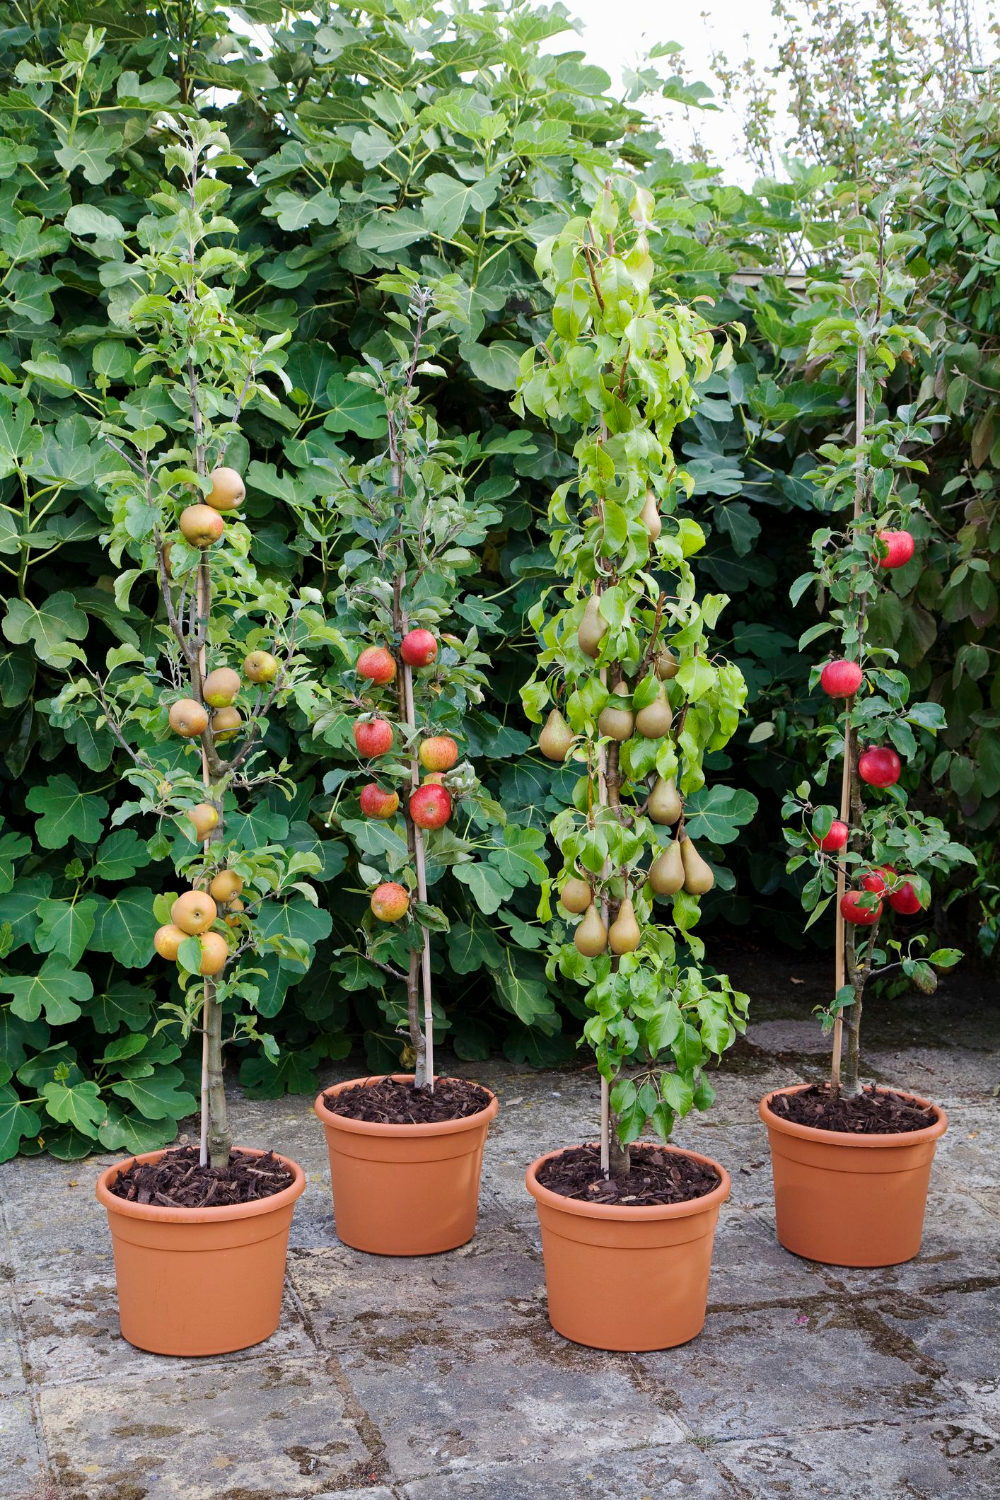 Expert Advice On Growing Fruit Trees In Containers In 2020 Dwarf Fruit Trees Fruit Tree Garden Fruit Trees In Containers